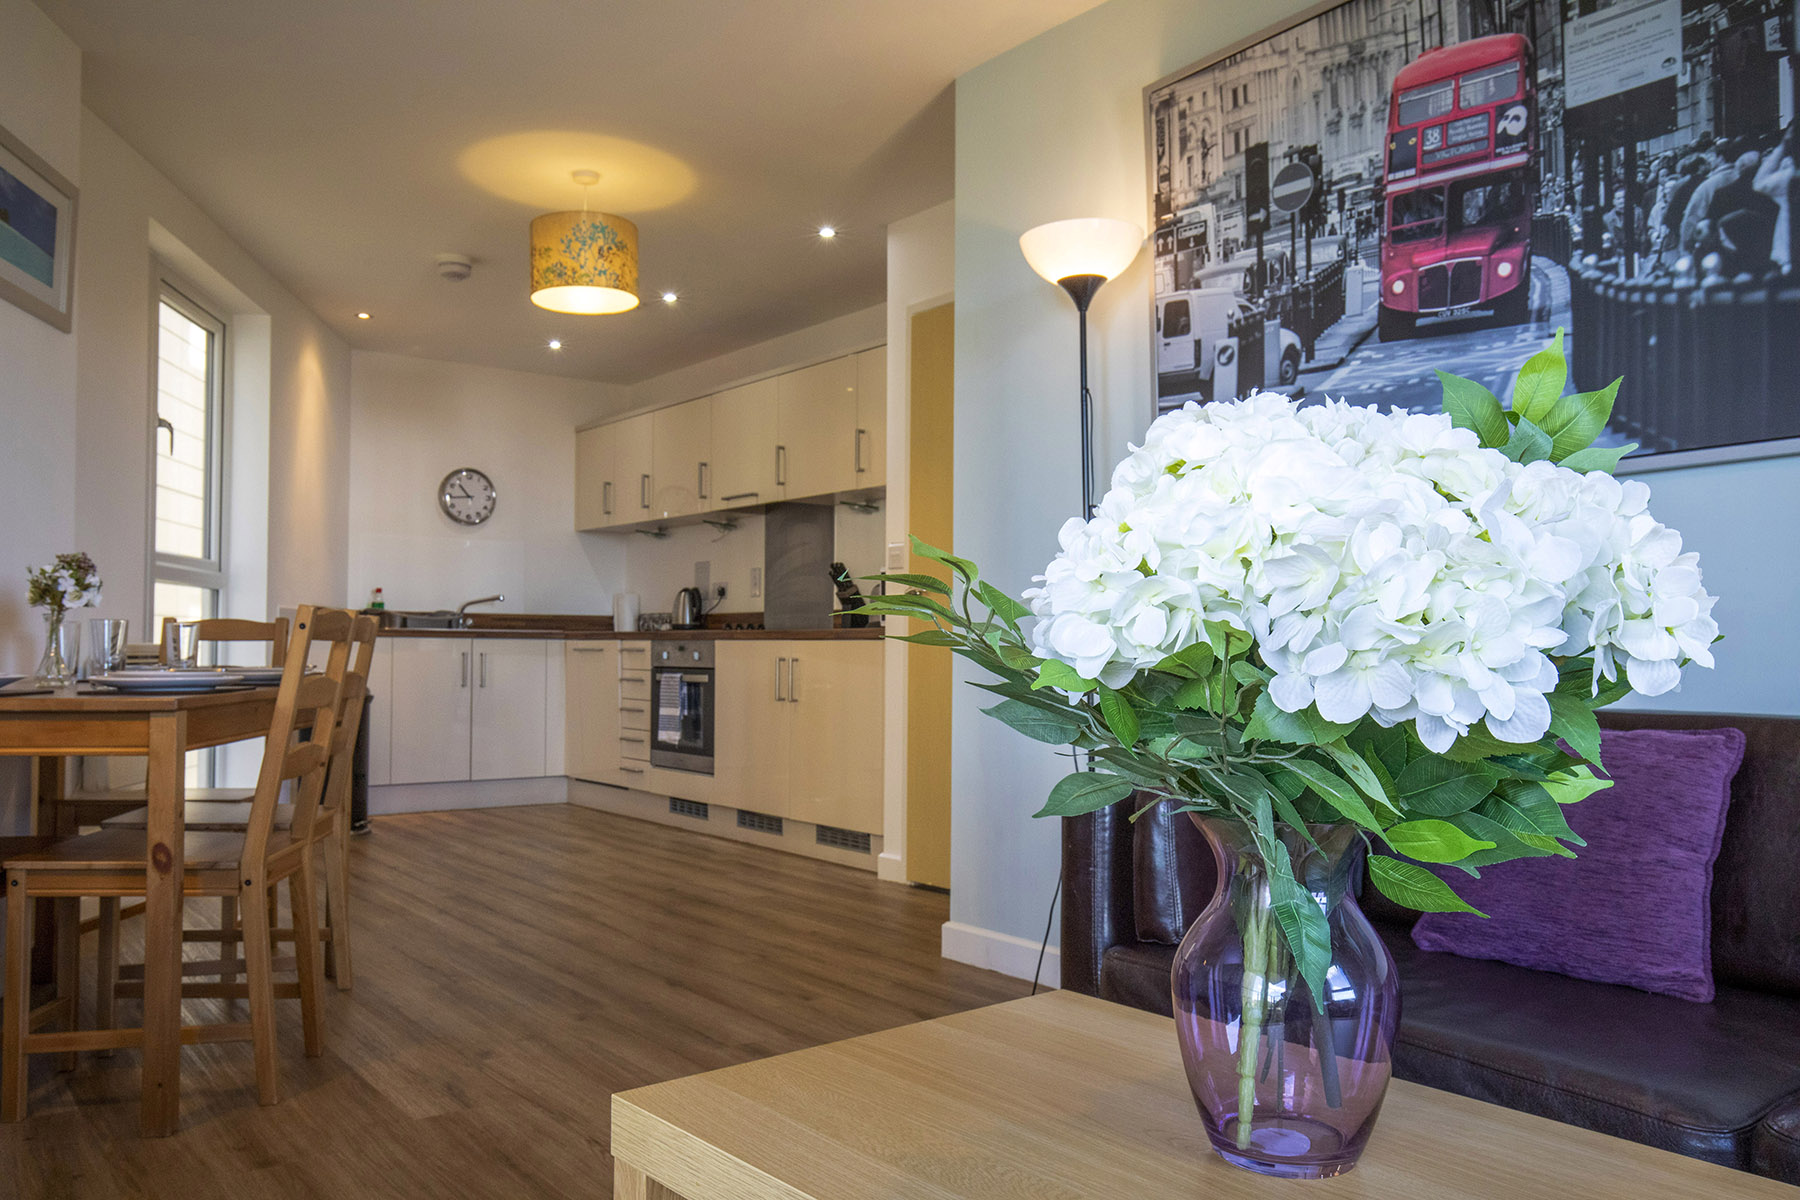 Kitchen/diner at New Central Apartments, Centre, Woking